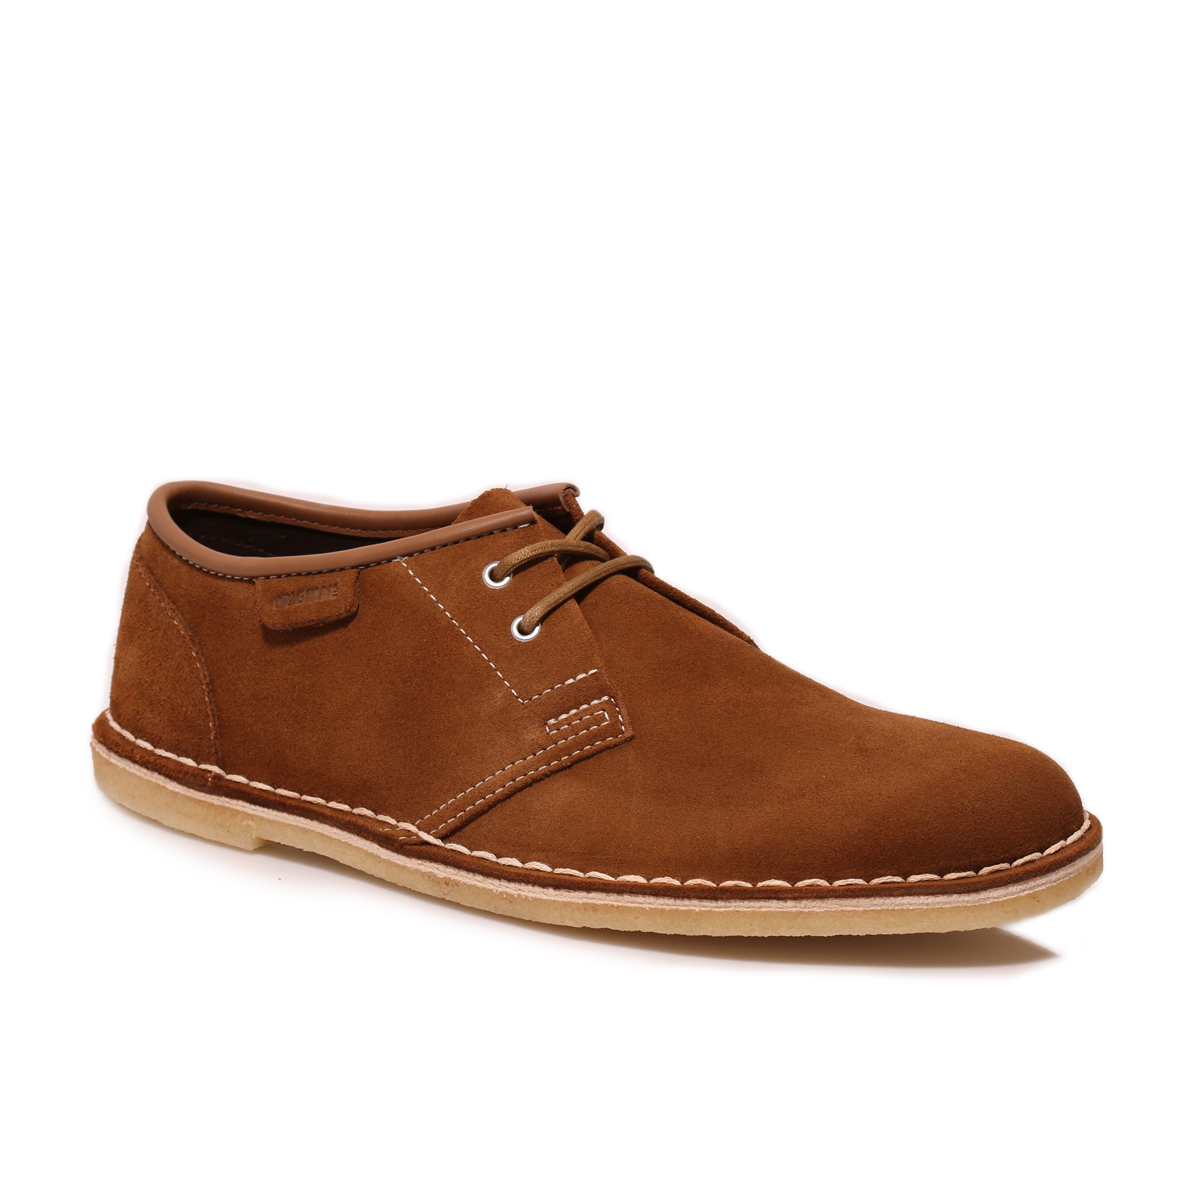 Shoes Similar To Clarks Desert Boots